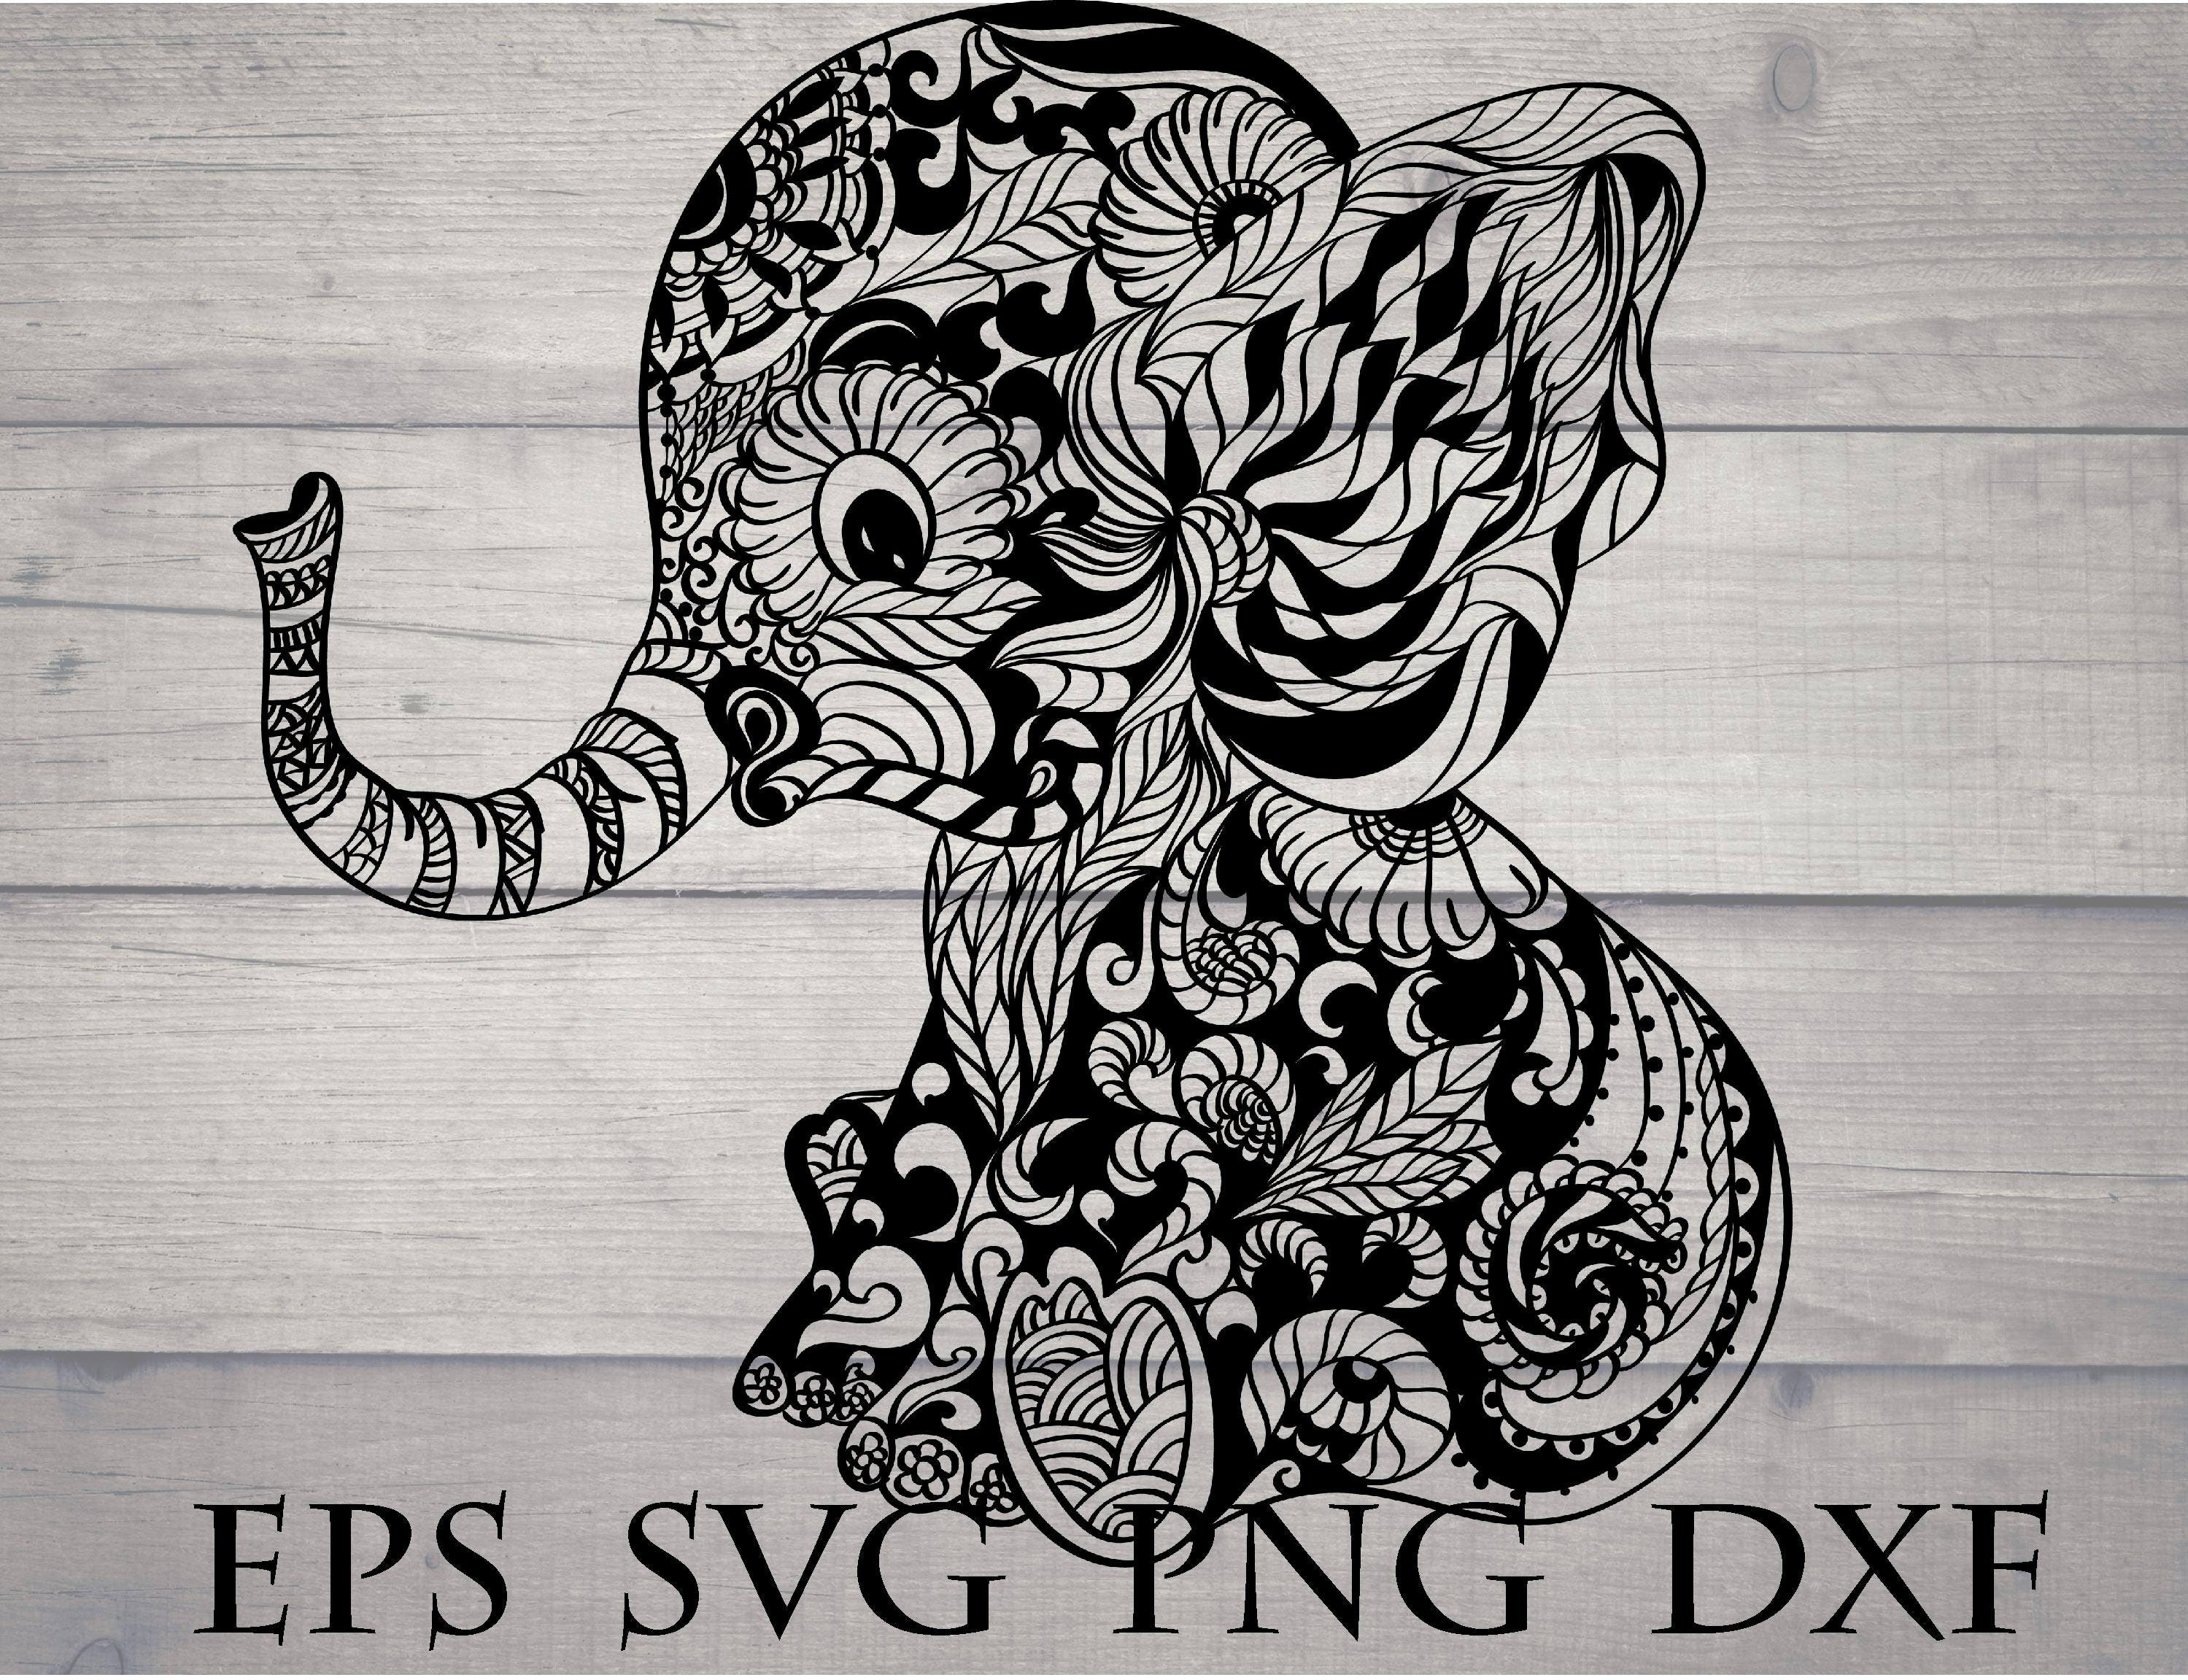 Elephant mandala svg / elephant zentangle svg / mandala elephant svg ...